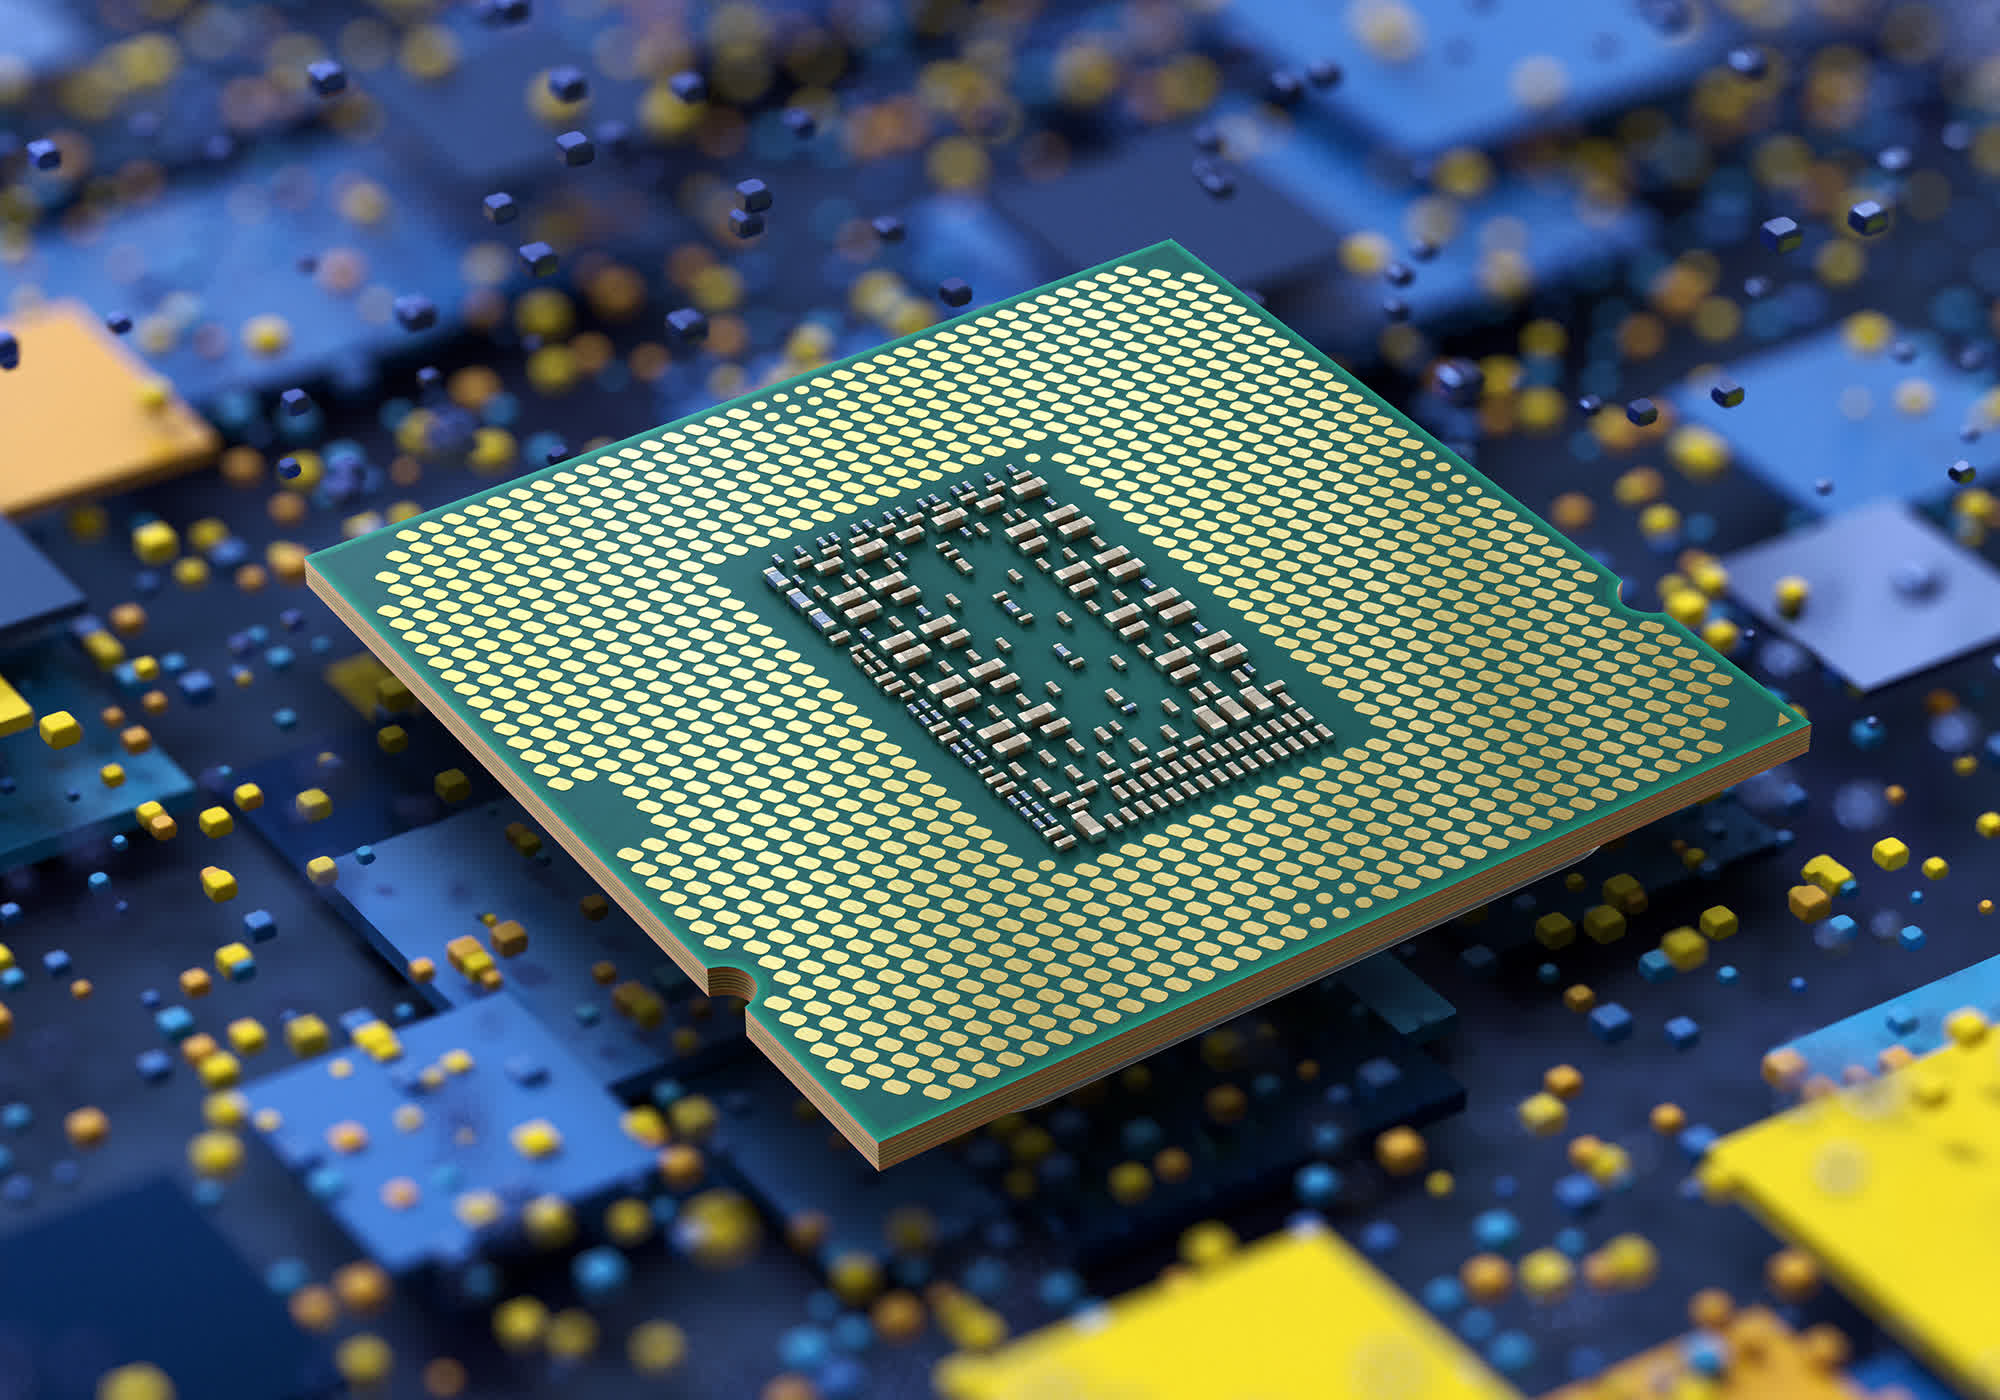 Intel 11th-gen Rocket Lake CPUs are now official, what you need to know ahead of reviews